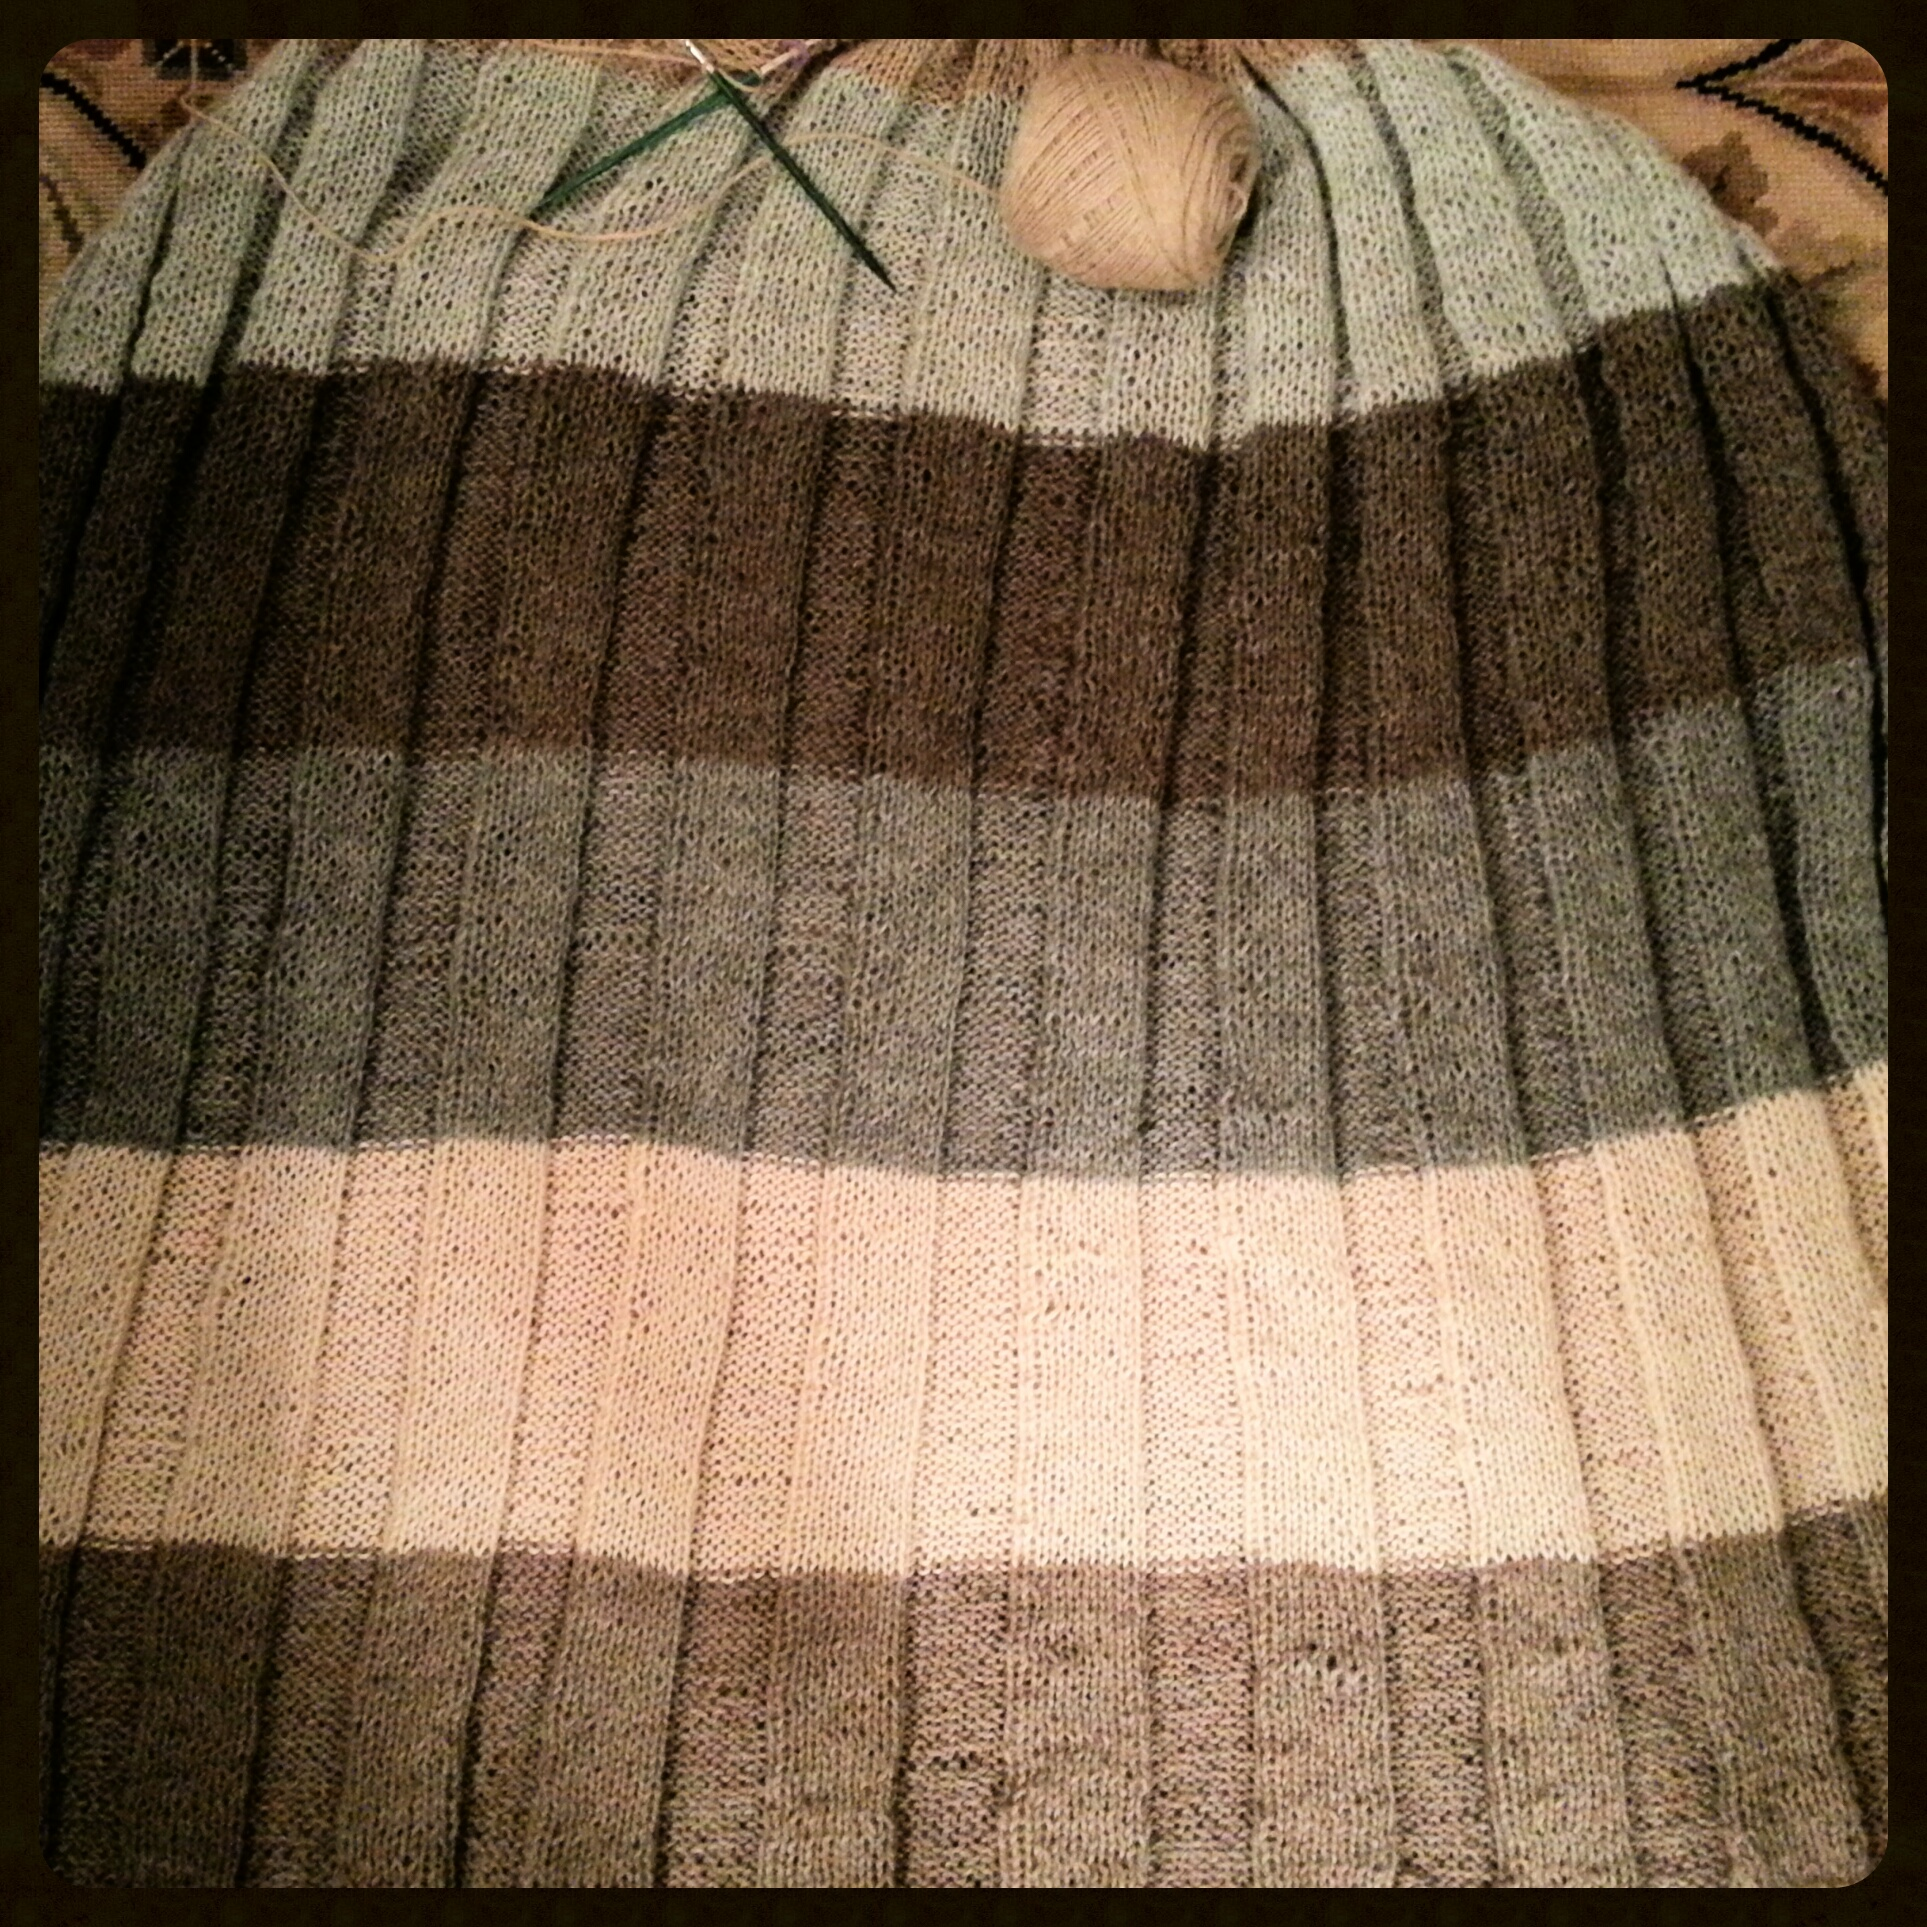 Six shades of undyed lace-weight yarn knitted into a large, striped stole.